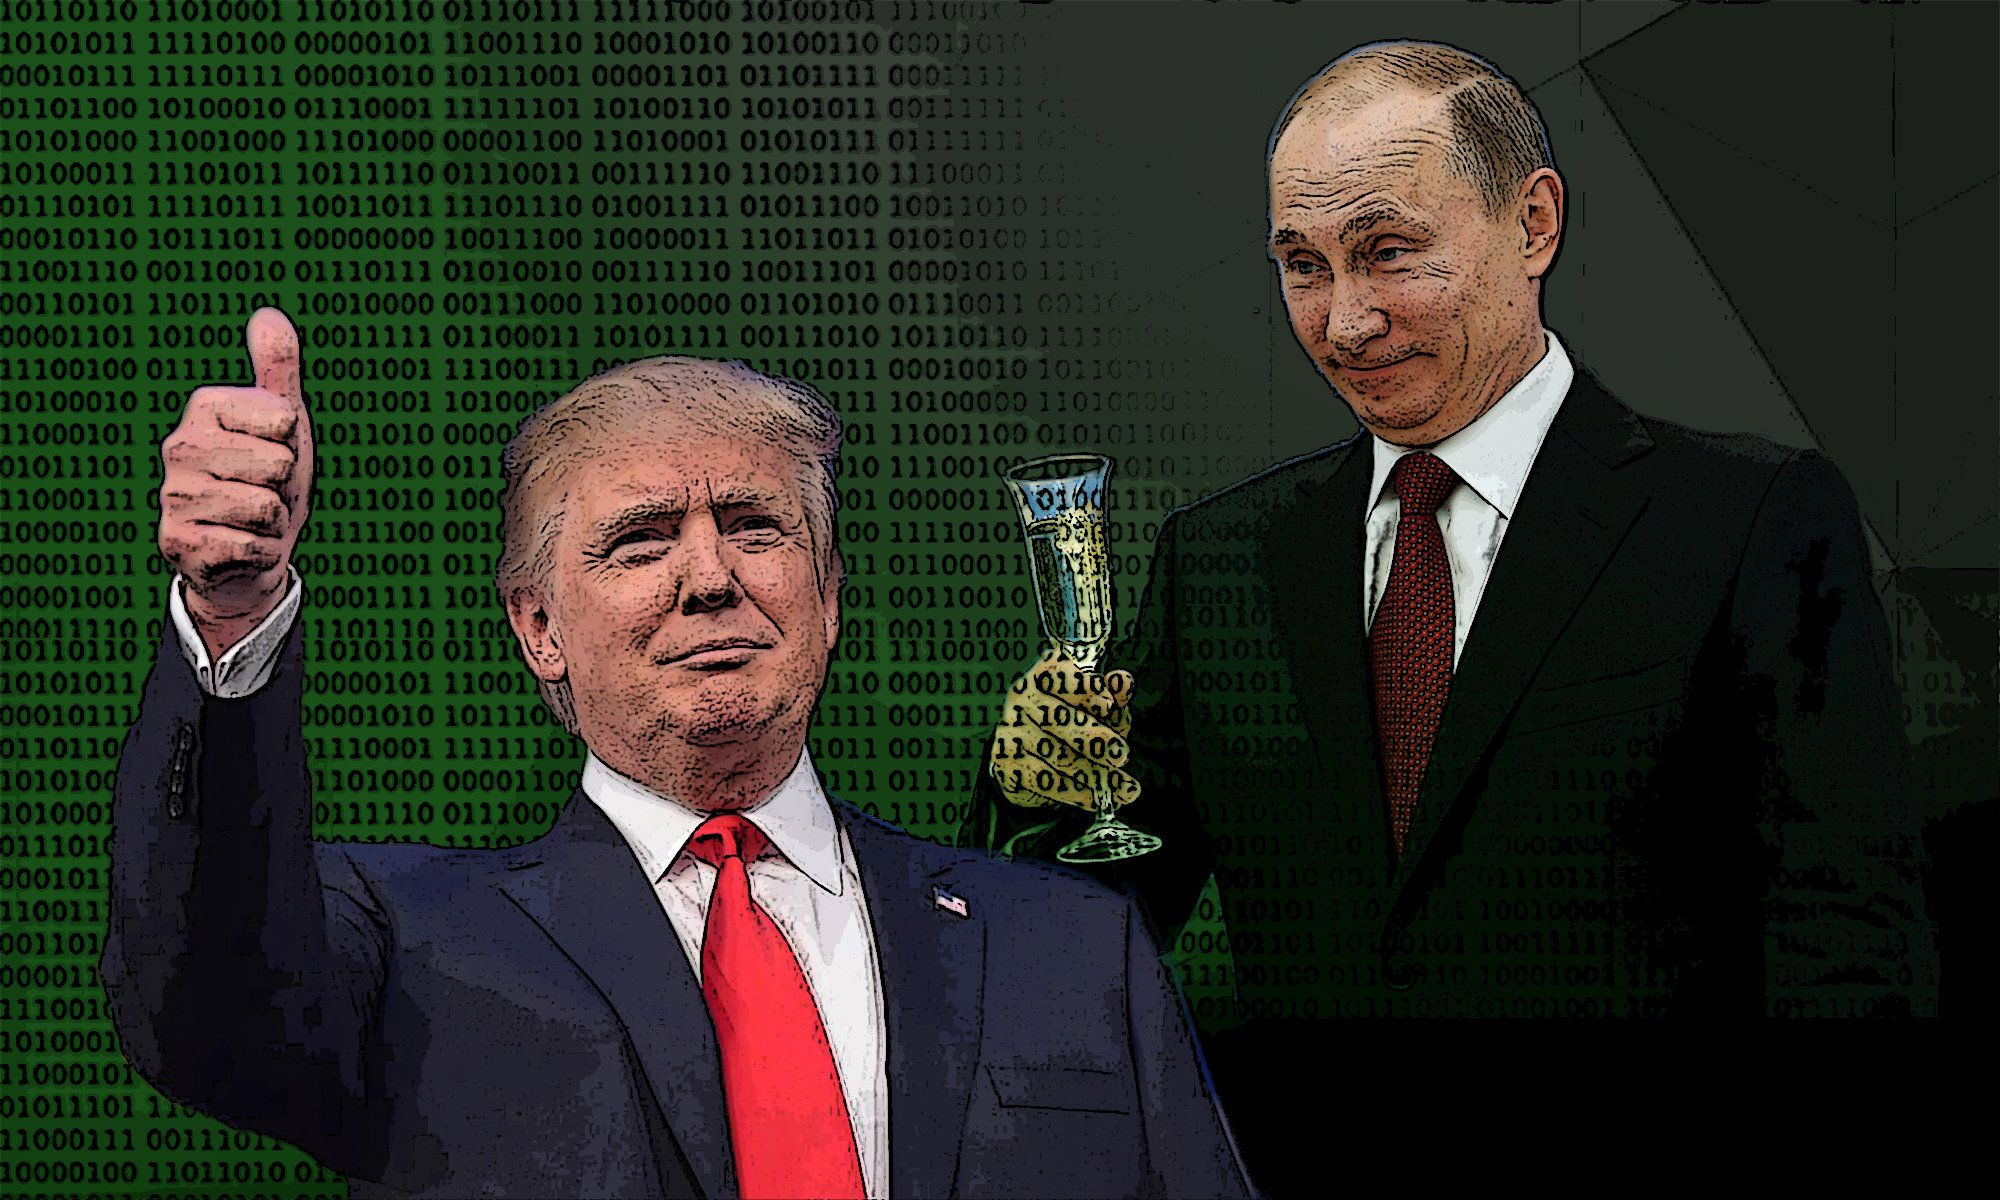 There is increasing evidence that Putin's Russia had a role in electing Donald